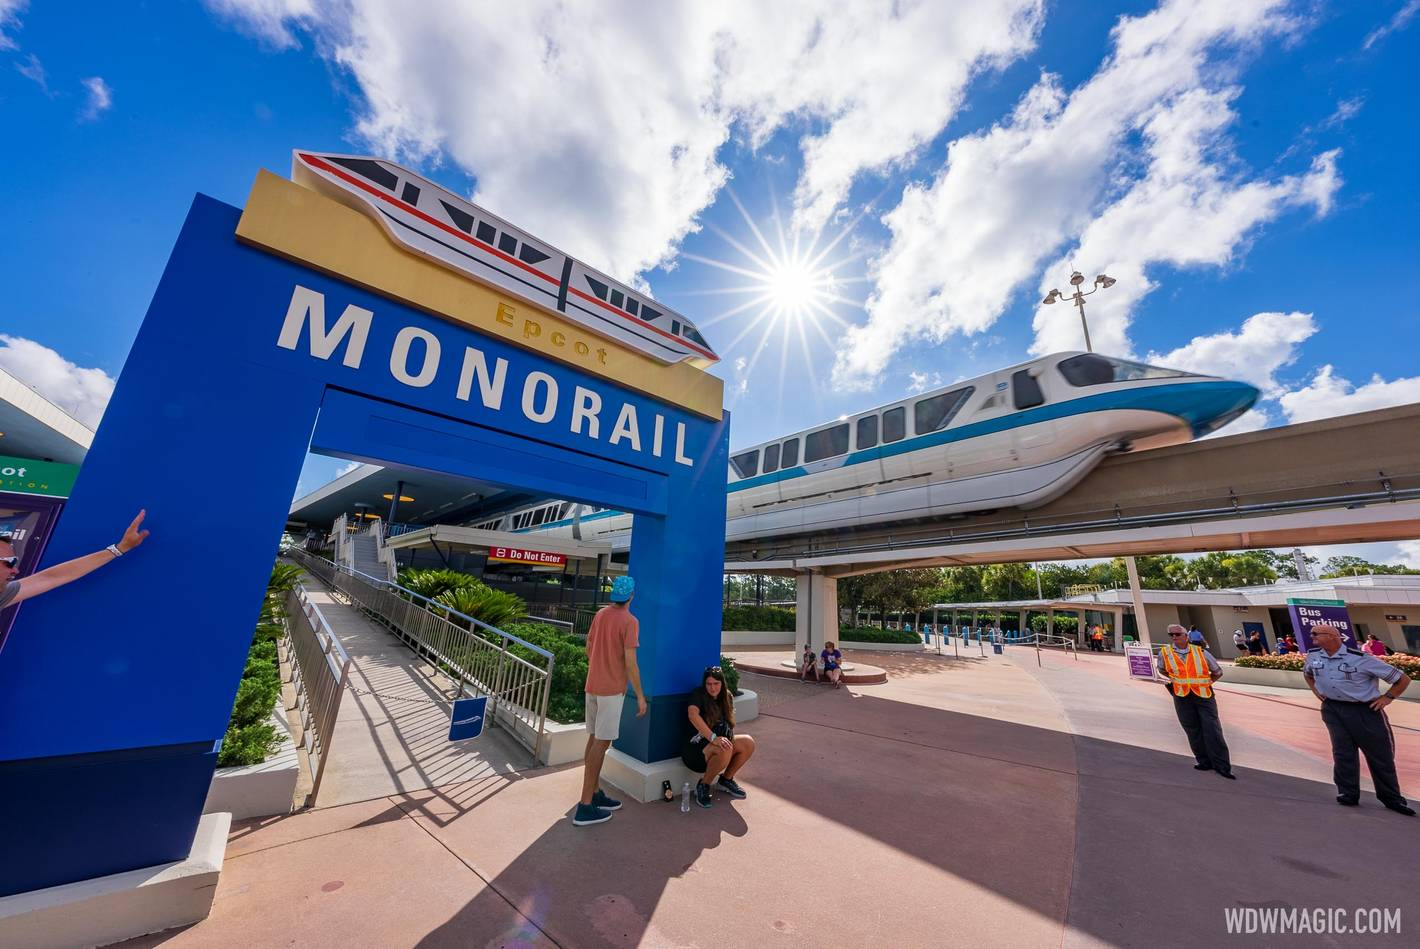 EPCOT Monorail Beam reopening July 18 2021